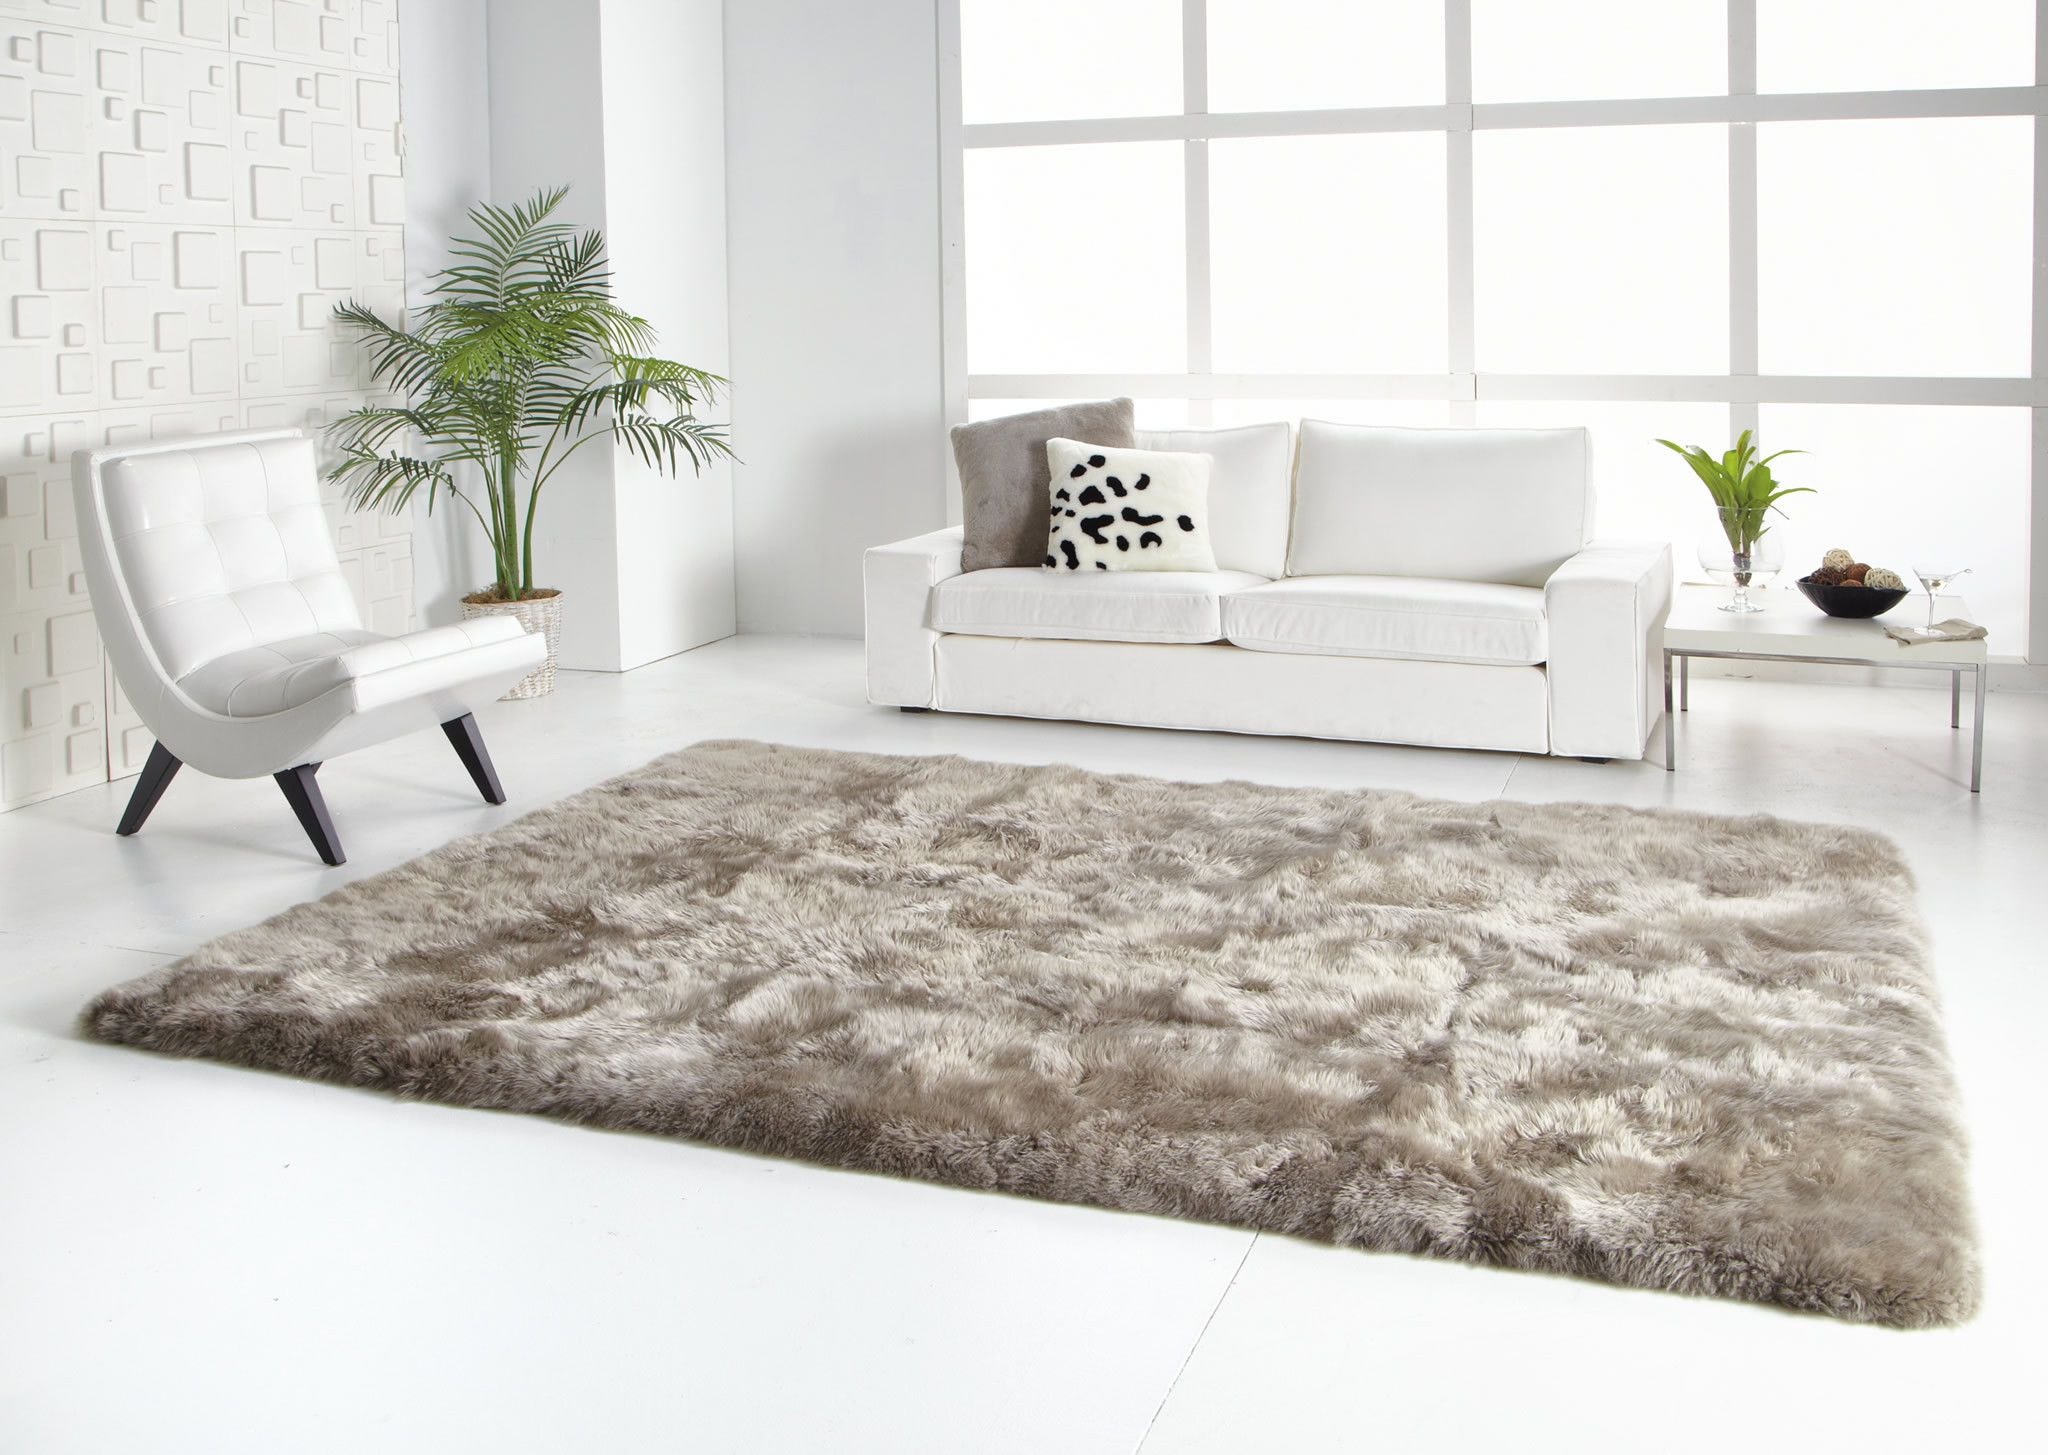 Design Rugs For Living Room Adorable Large Natural Sheepskin Area Rug With Straight Edges  Wool Rug Decorating Design